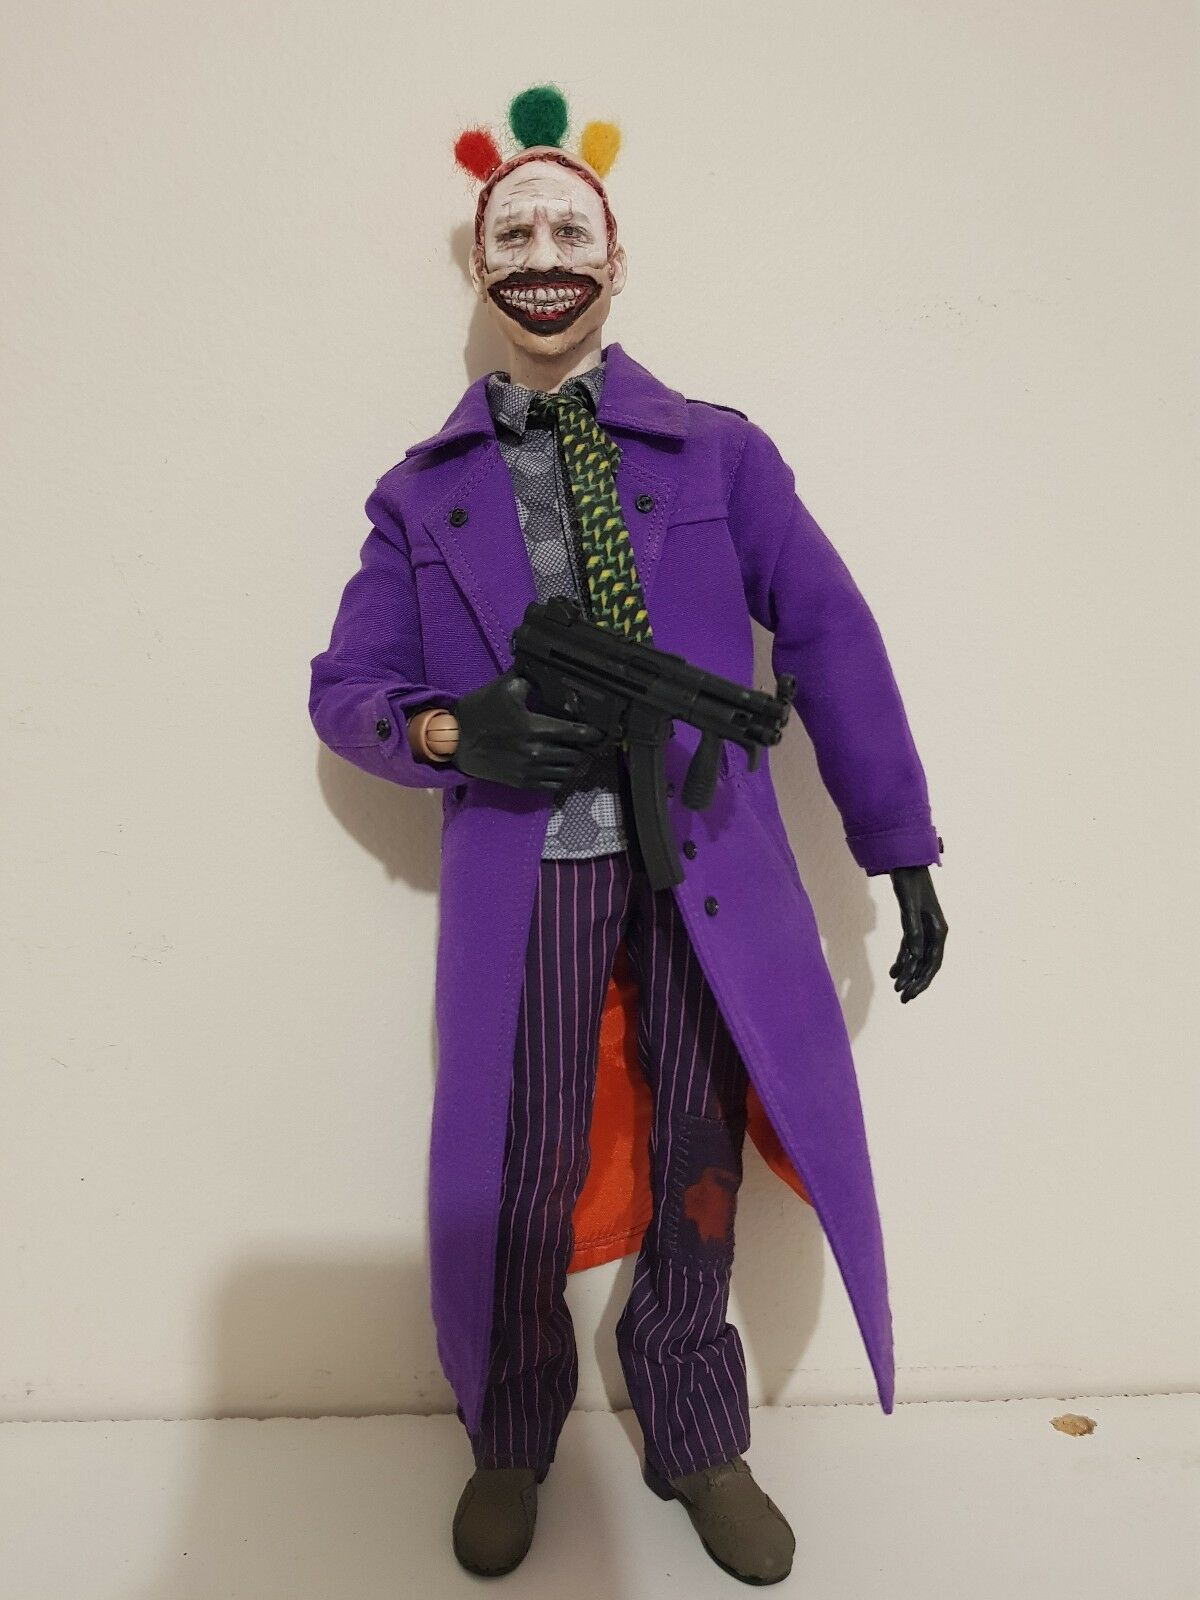 CUSTOM 1/6 SCALE TWISTY THE CLOWN IN JOKER OUTFIT